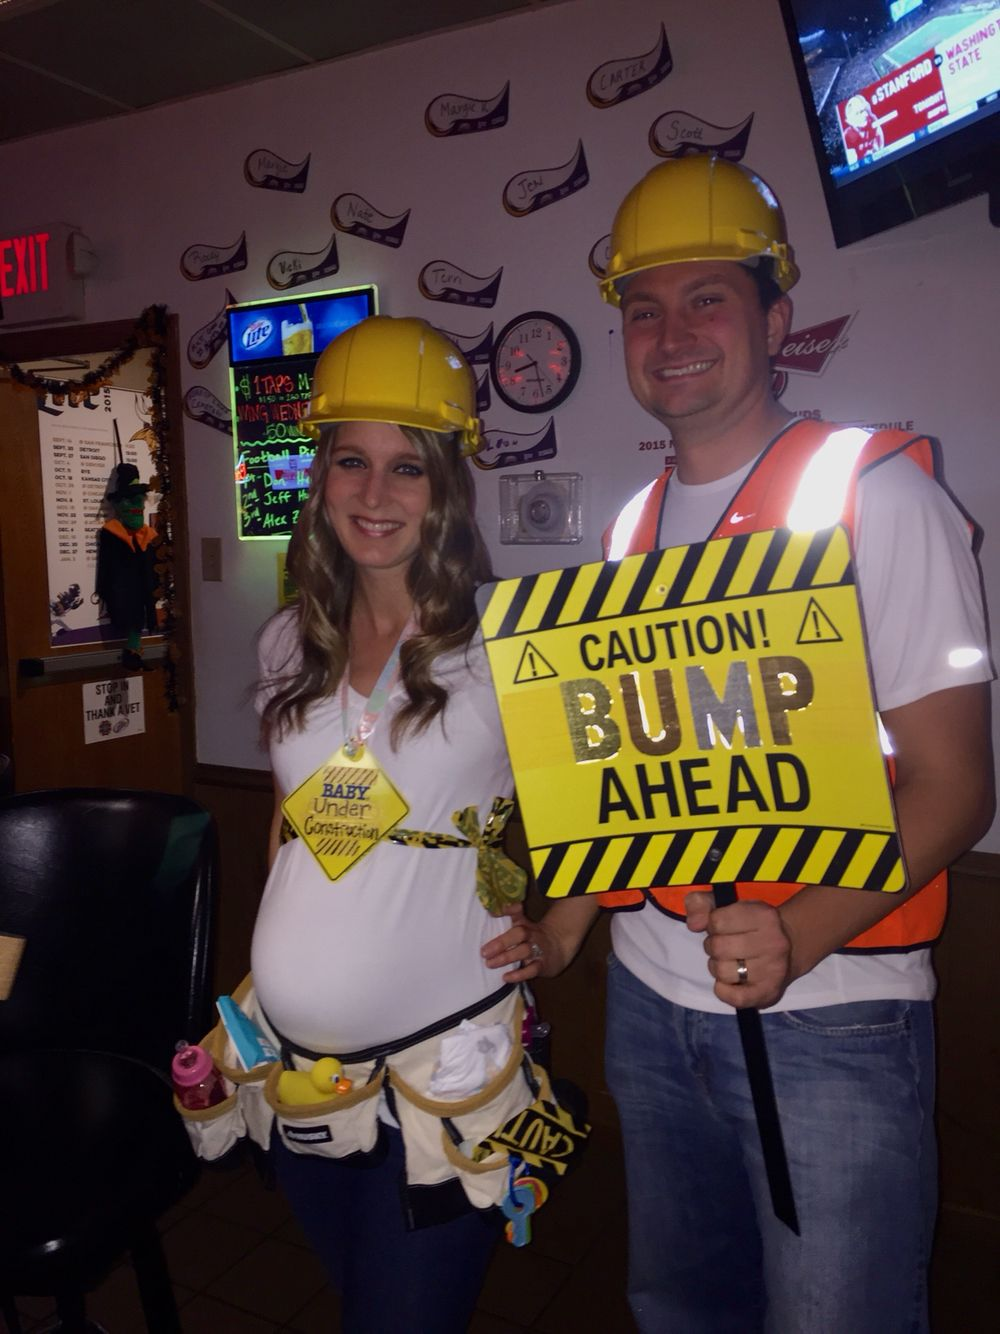 Pregnant Halloween Costume Ideas For Couples.Pregnant Construction Worker Couples Halloween Costume Halloween